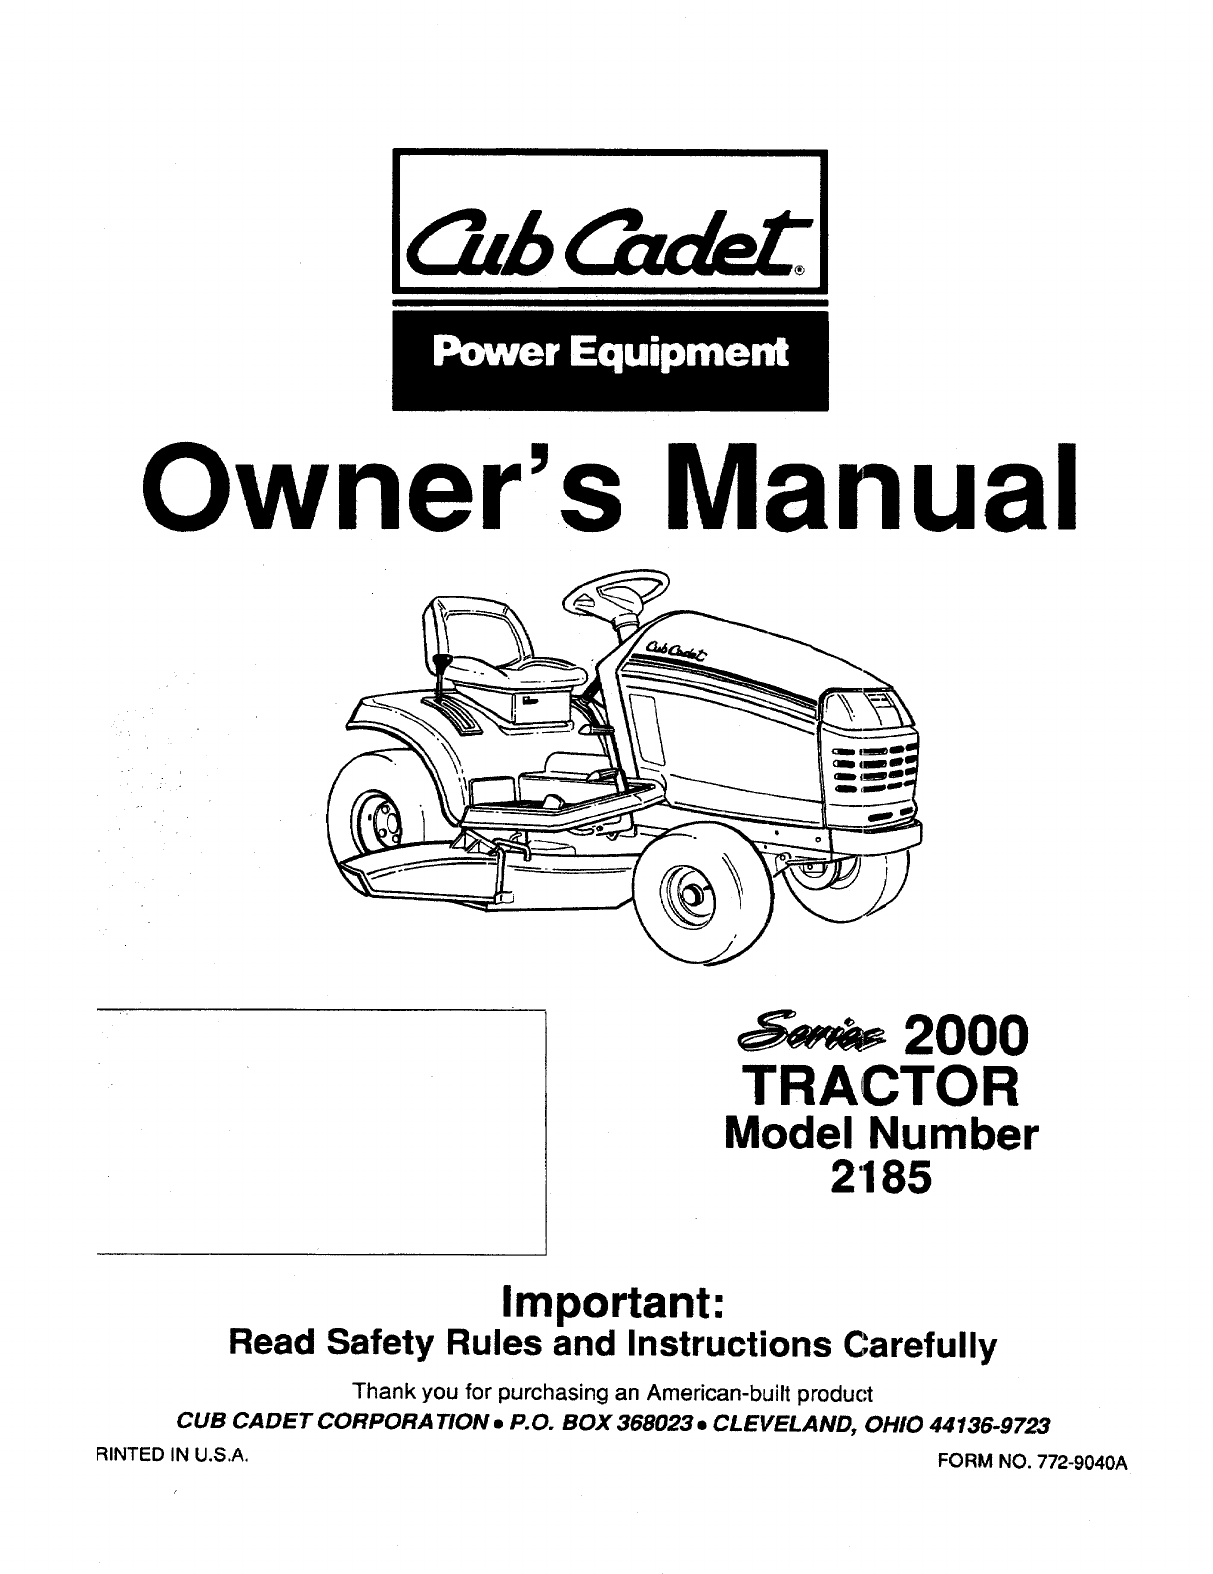 Cub cadet lawn mower 2185 user guide manualsonline next pooptronica